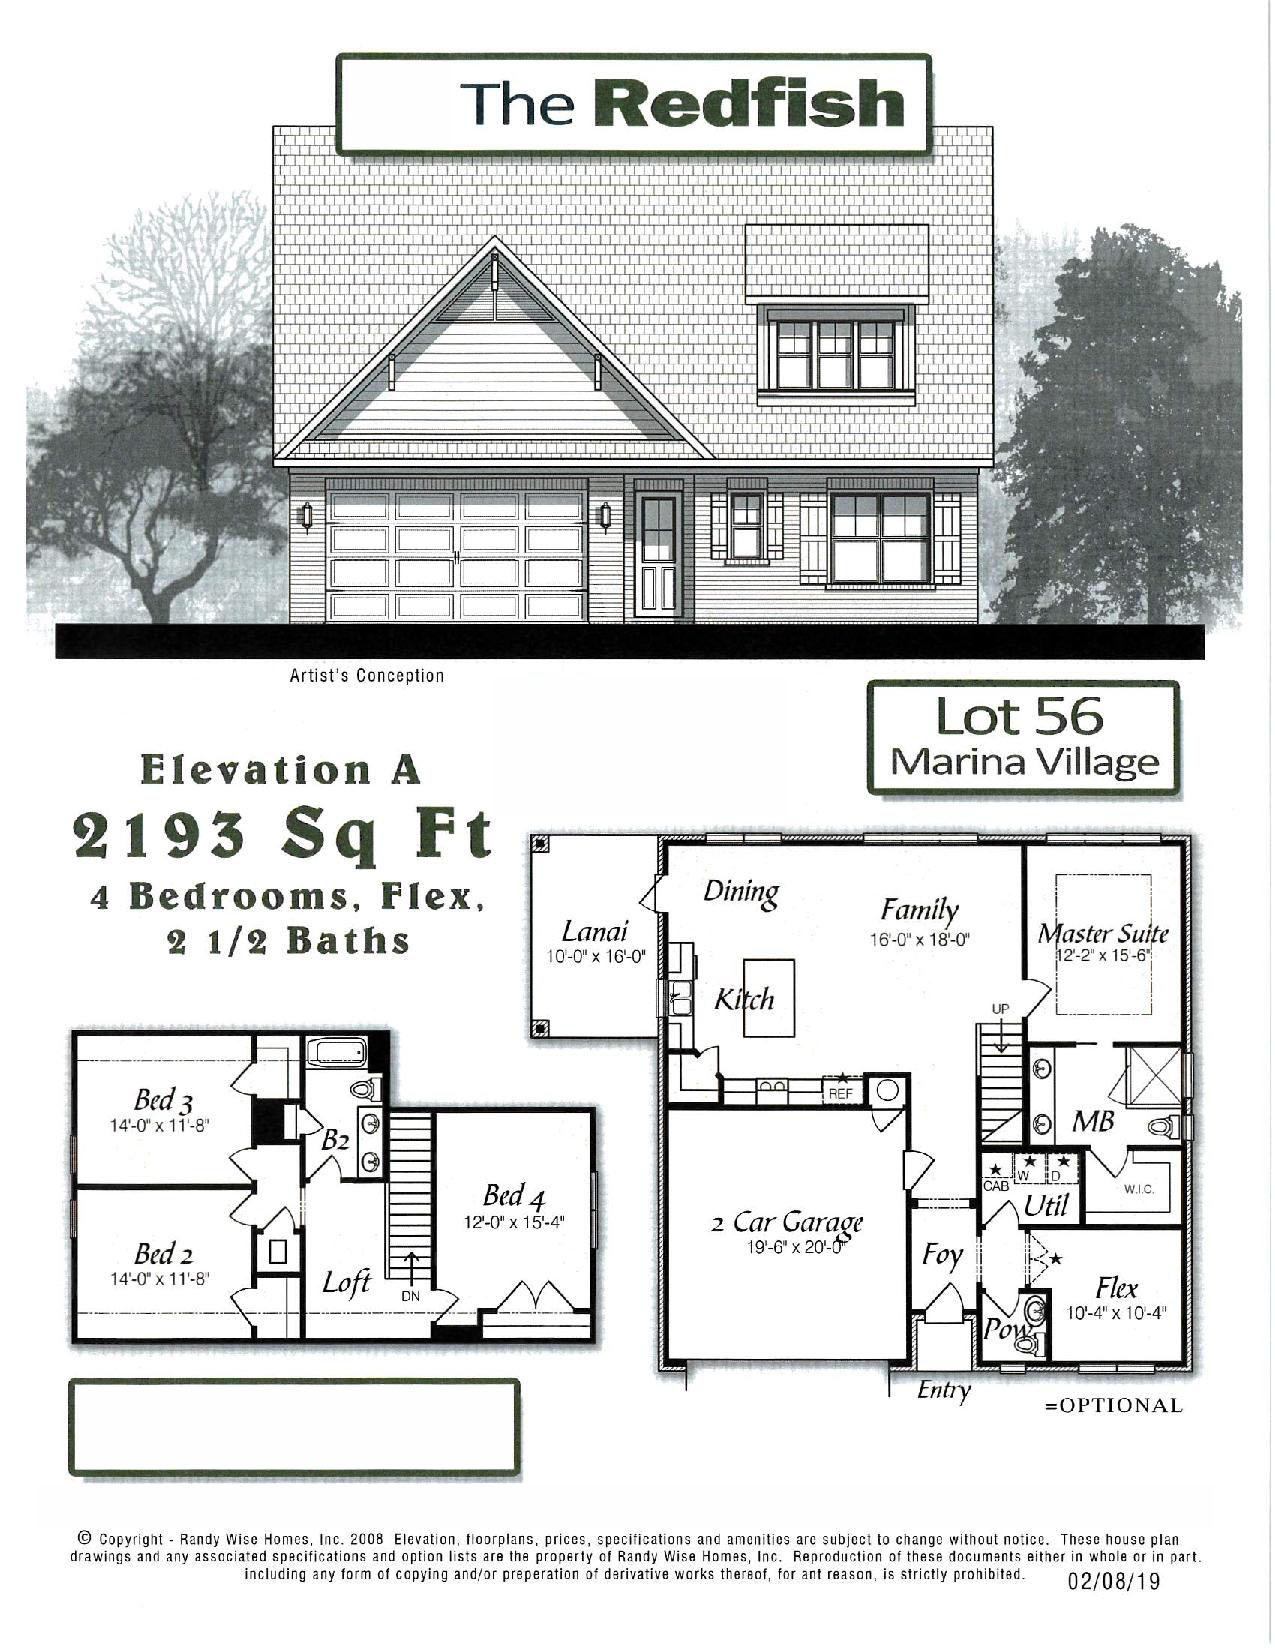 LAST LOT IN CUL-DE-SAC!! Marina Village is a private, quiet, bayou-coastal community with a pool, playground, and stocked ponds for catch and release fishing only. Marina Village has direct access to Lagrange Bayou via the Freeport Marina, which is the only full service marina in our area! The Redfish two-story floor plan has 2193 sq.ft. with 4 bedrooms plus a flex room, and 2.5 baths. Brick exterior, low e-vinyl windows, covered entry, 2 car garage, and landscaping package with automatic sprinkler system are just some of the exterior finishes on the home. Interior finishes include 9 ft ceilings, laminate, tile, and carpet floor coverings, brushed nickel fixtures, double vanity and walk-in closet in the master bath, and granite counter tops, as well as upgrades to include 8 ft interior